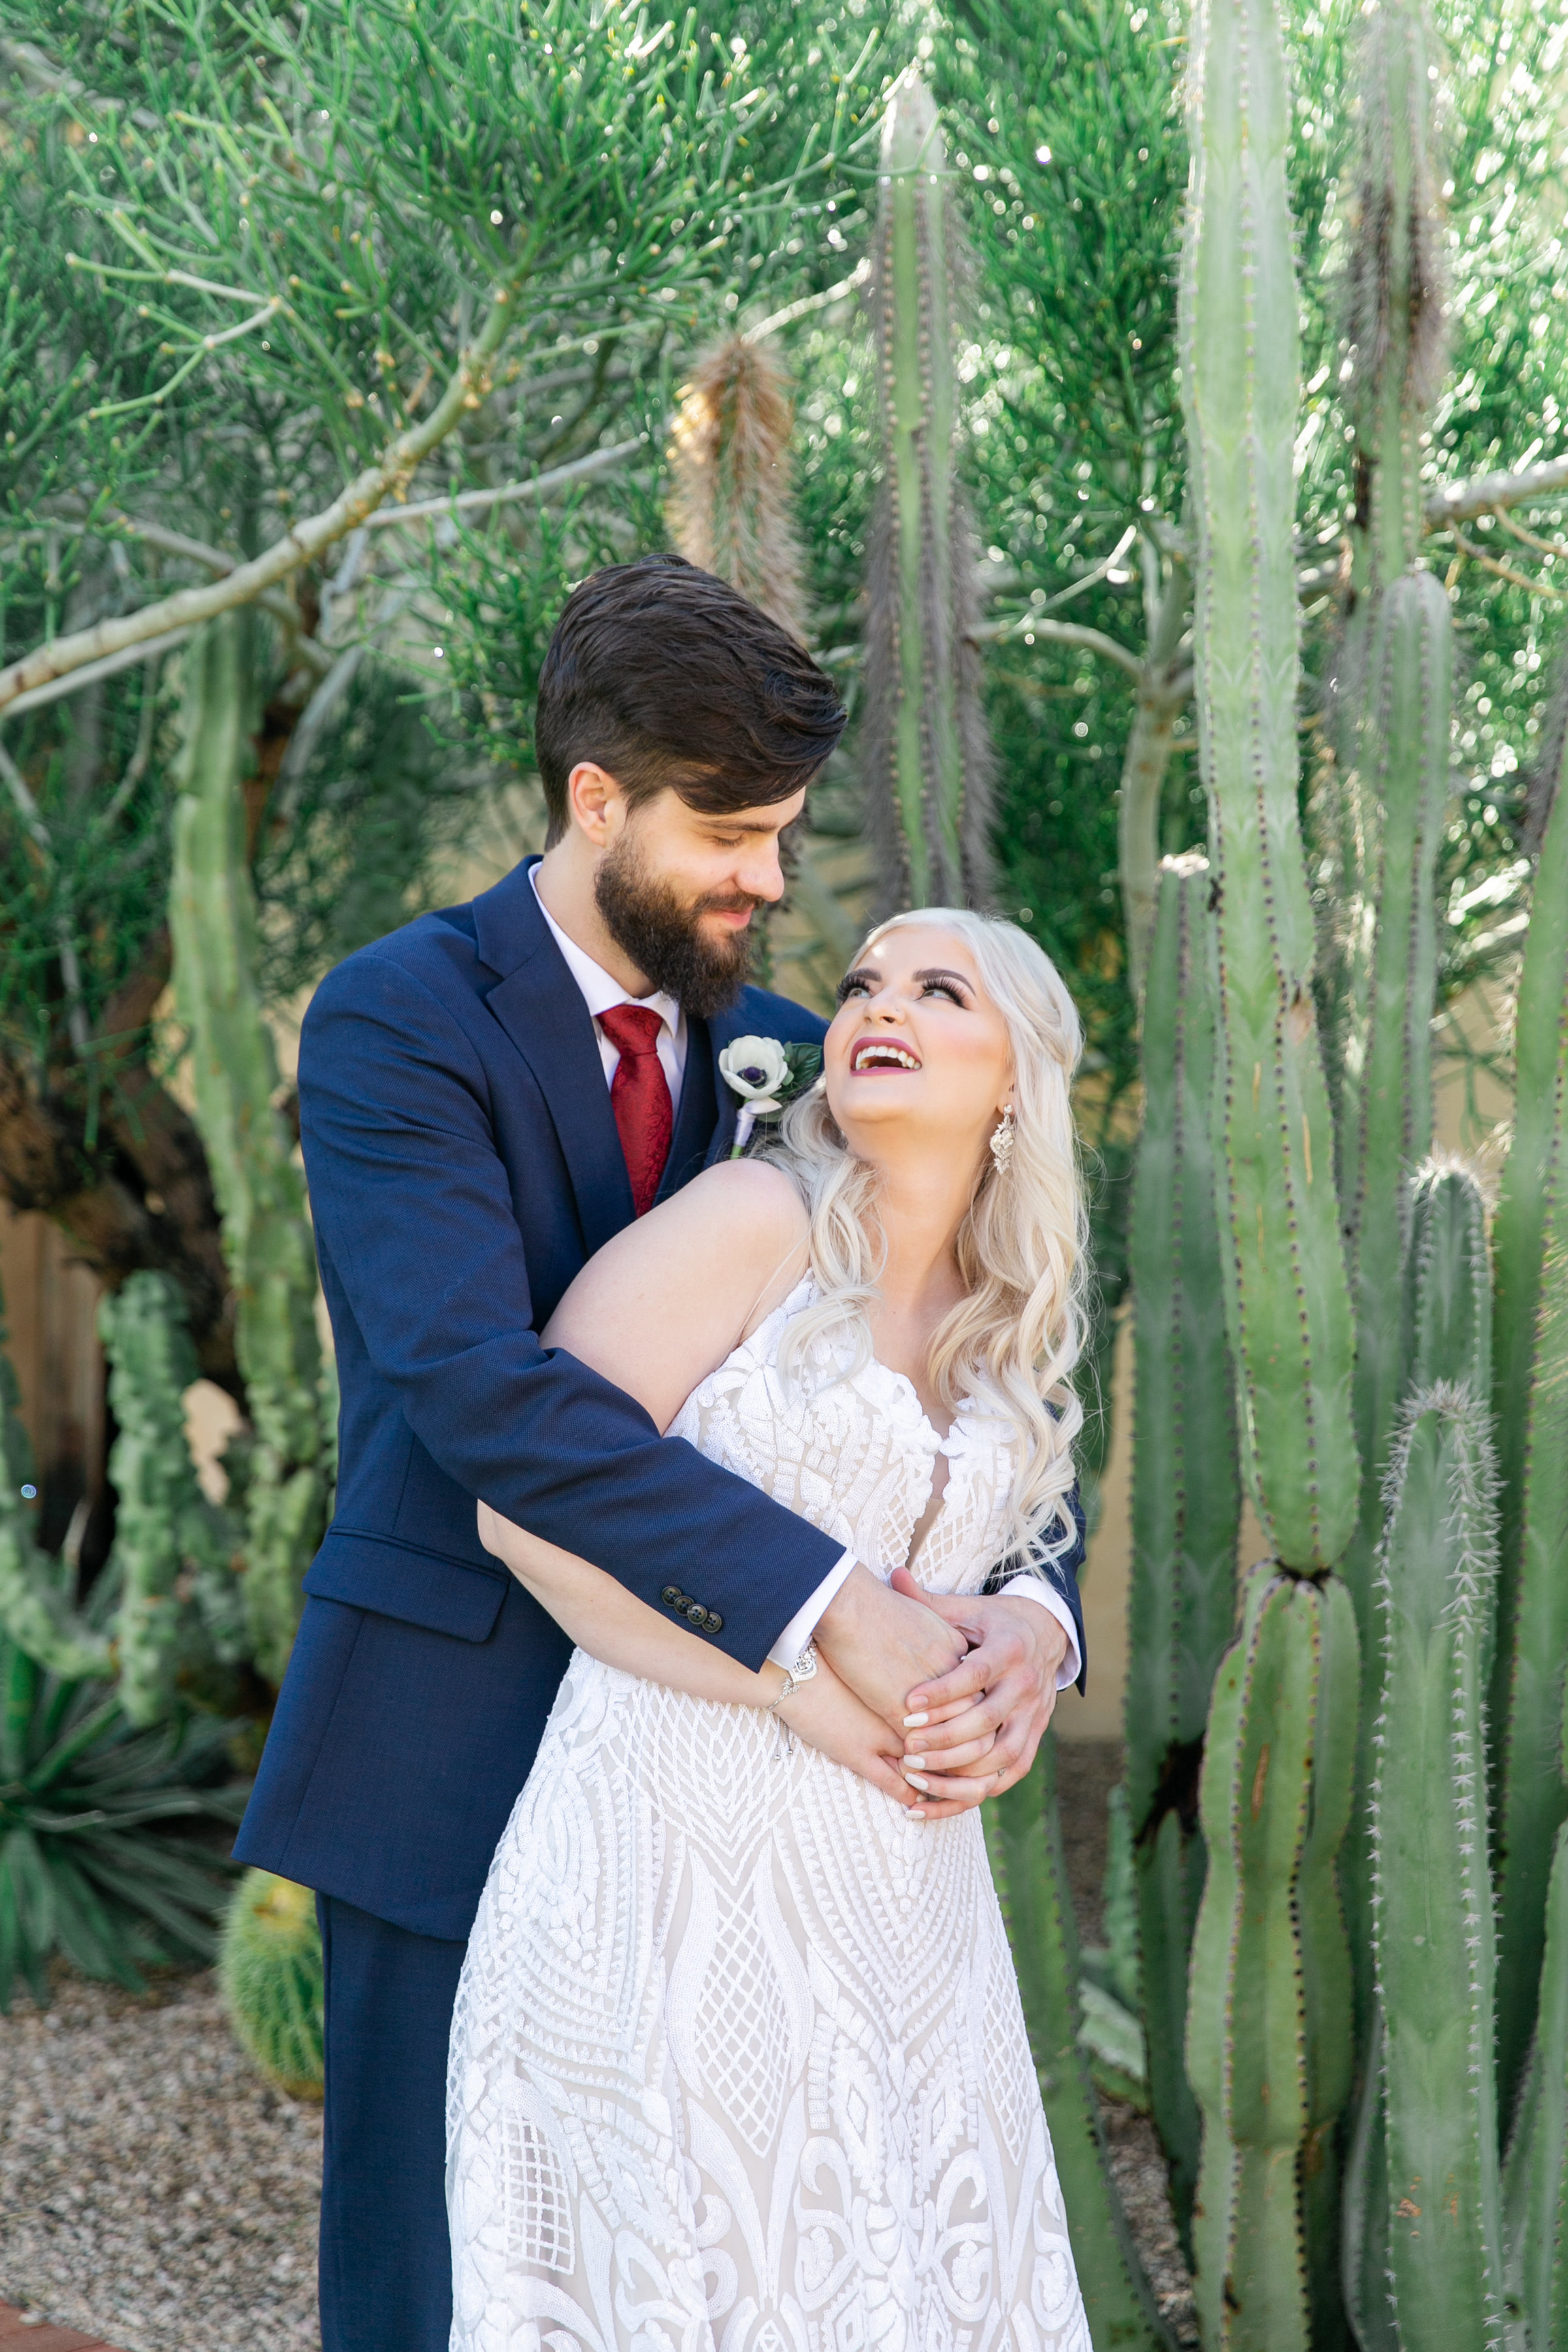 Karlie Colleen Photography - The Royal Palms Wedding - Some Like It Classic - Alex & Sam-162